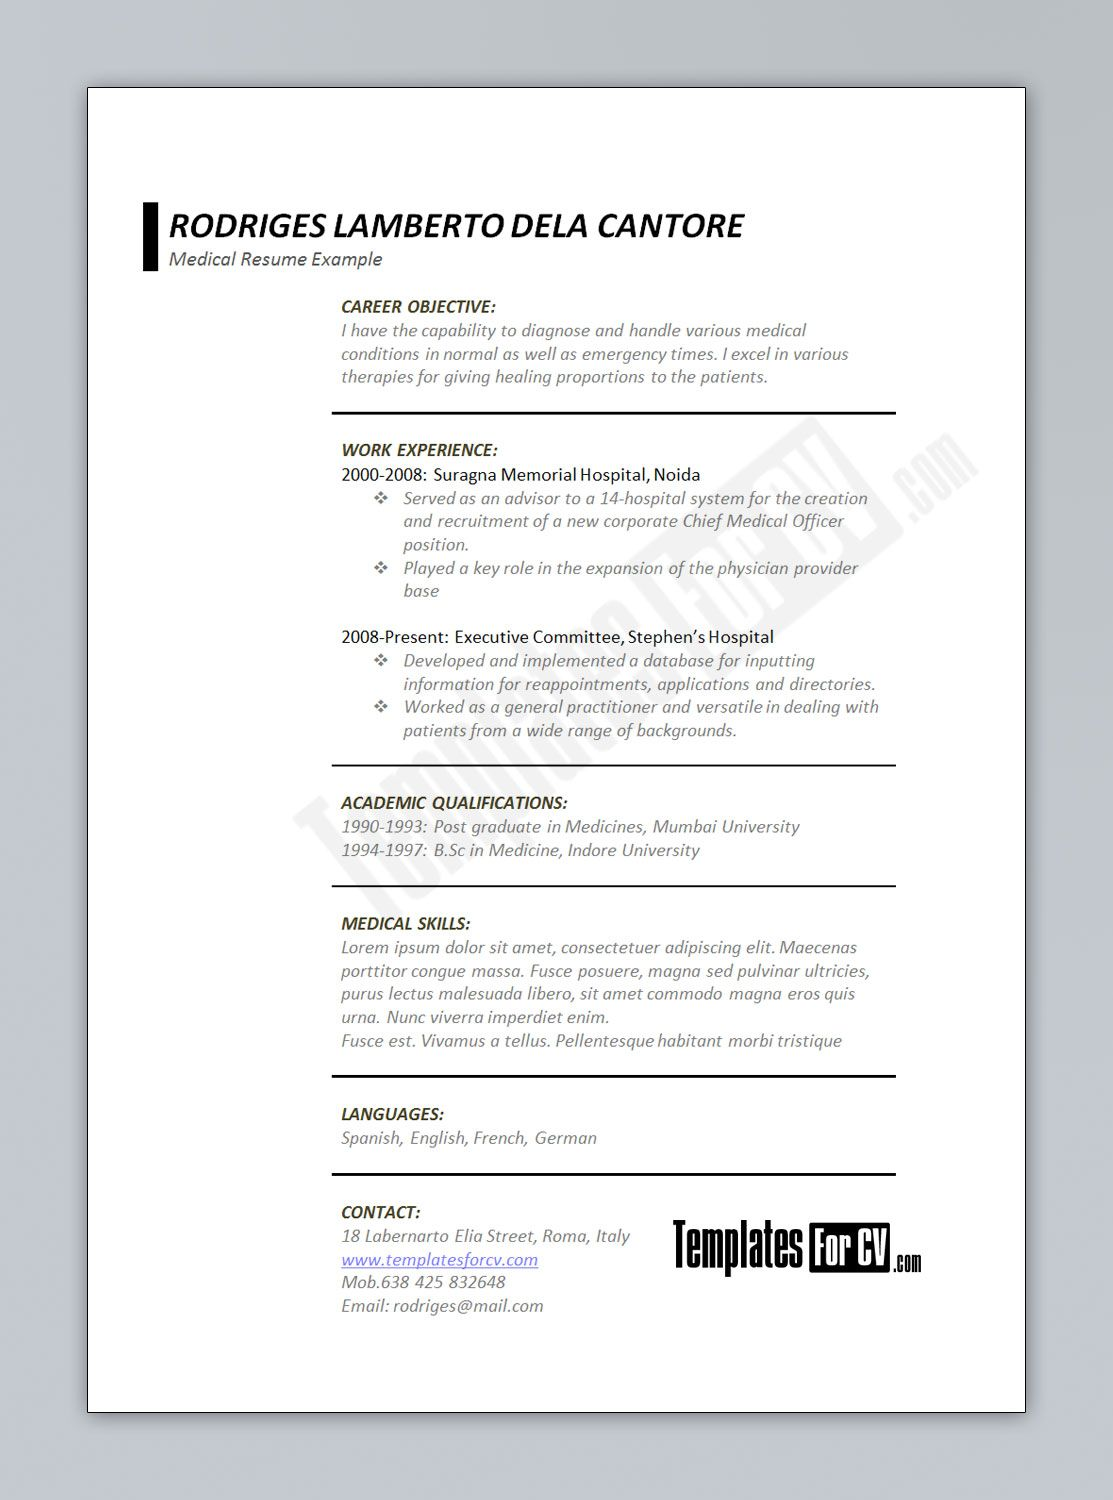 example of a good cv for student resume letter of resignation this article discusses how to write and organize a medical cv template and provides a to resume template